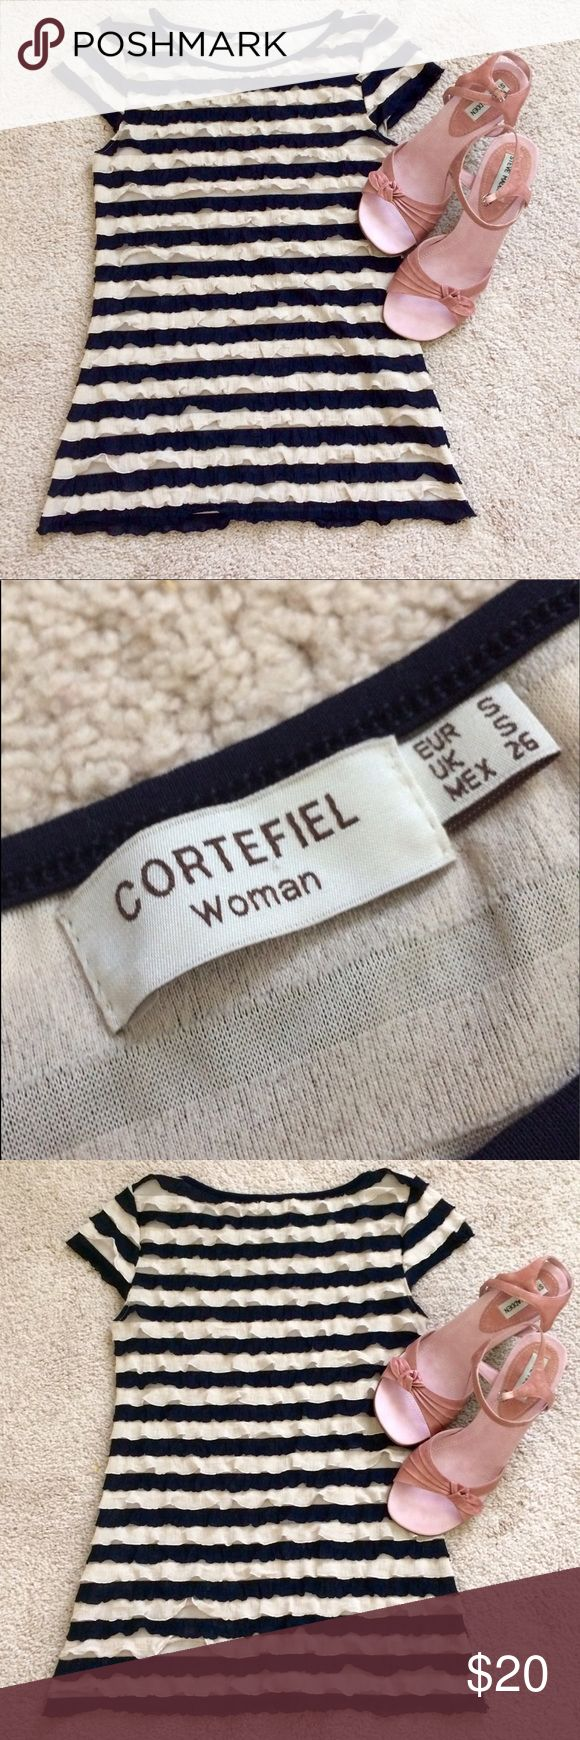 Cortefiel Woman's Shirt 👚📦📦🛍 Very beautiful and simple Cortefiel shirt, Excellent condition worn 2 times. Size:S Cortefiel Tops Tees - Short Sleeve